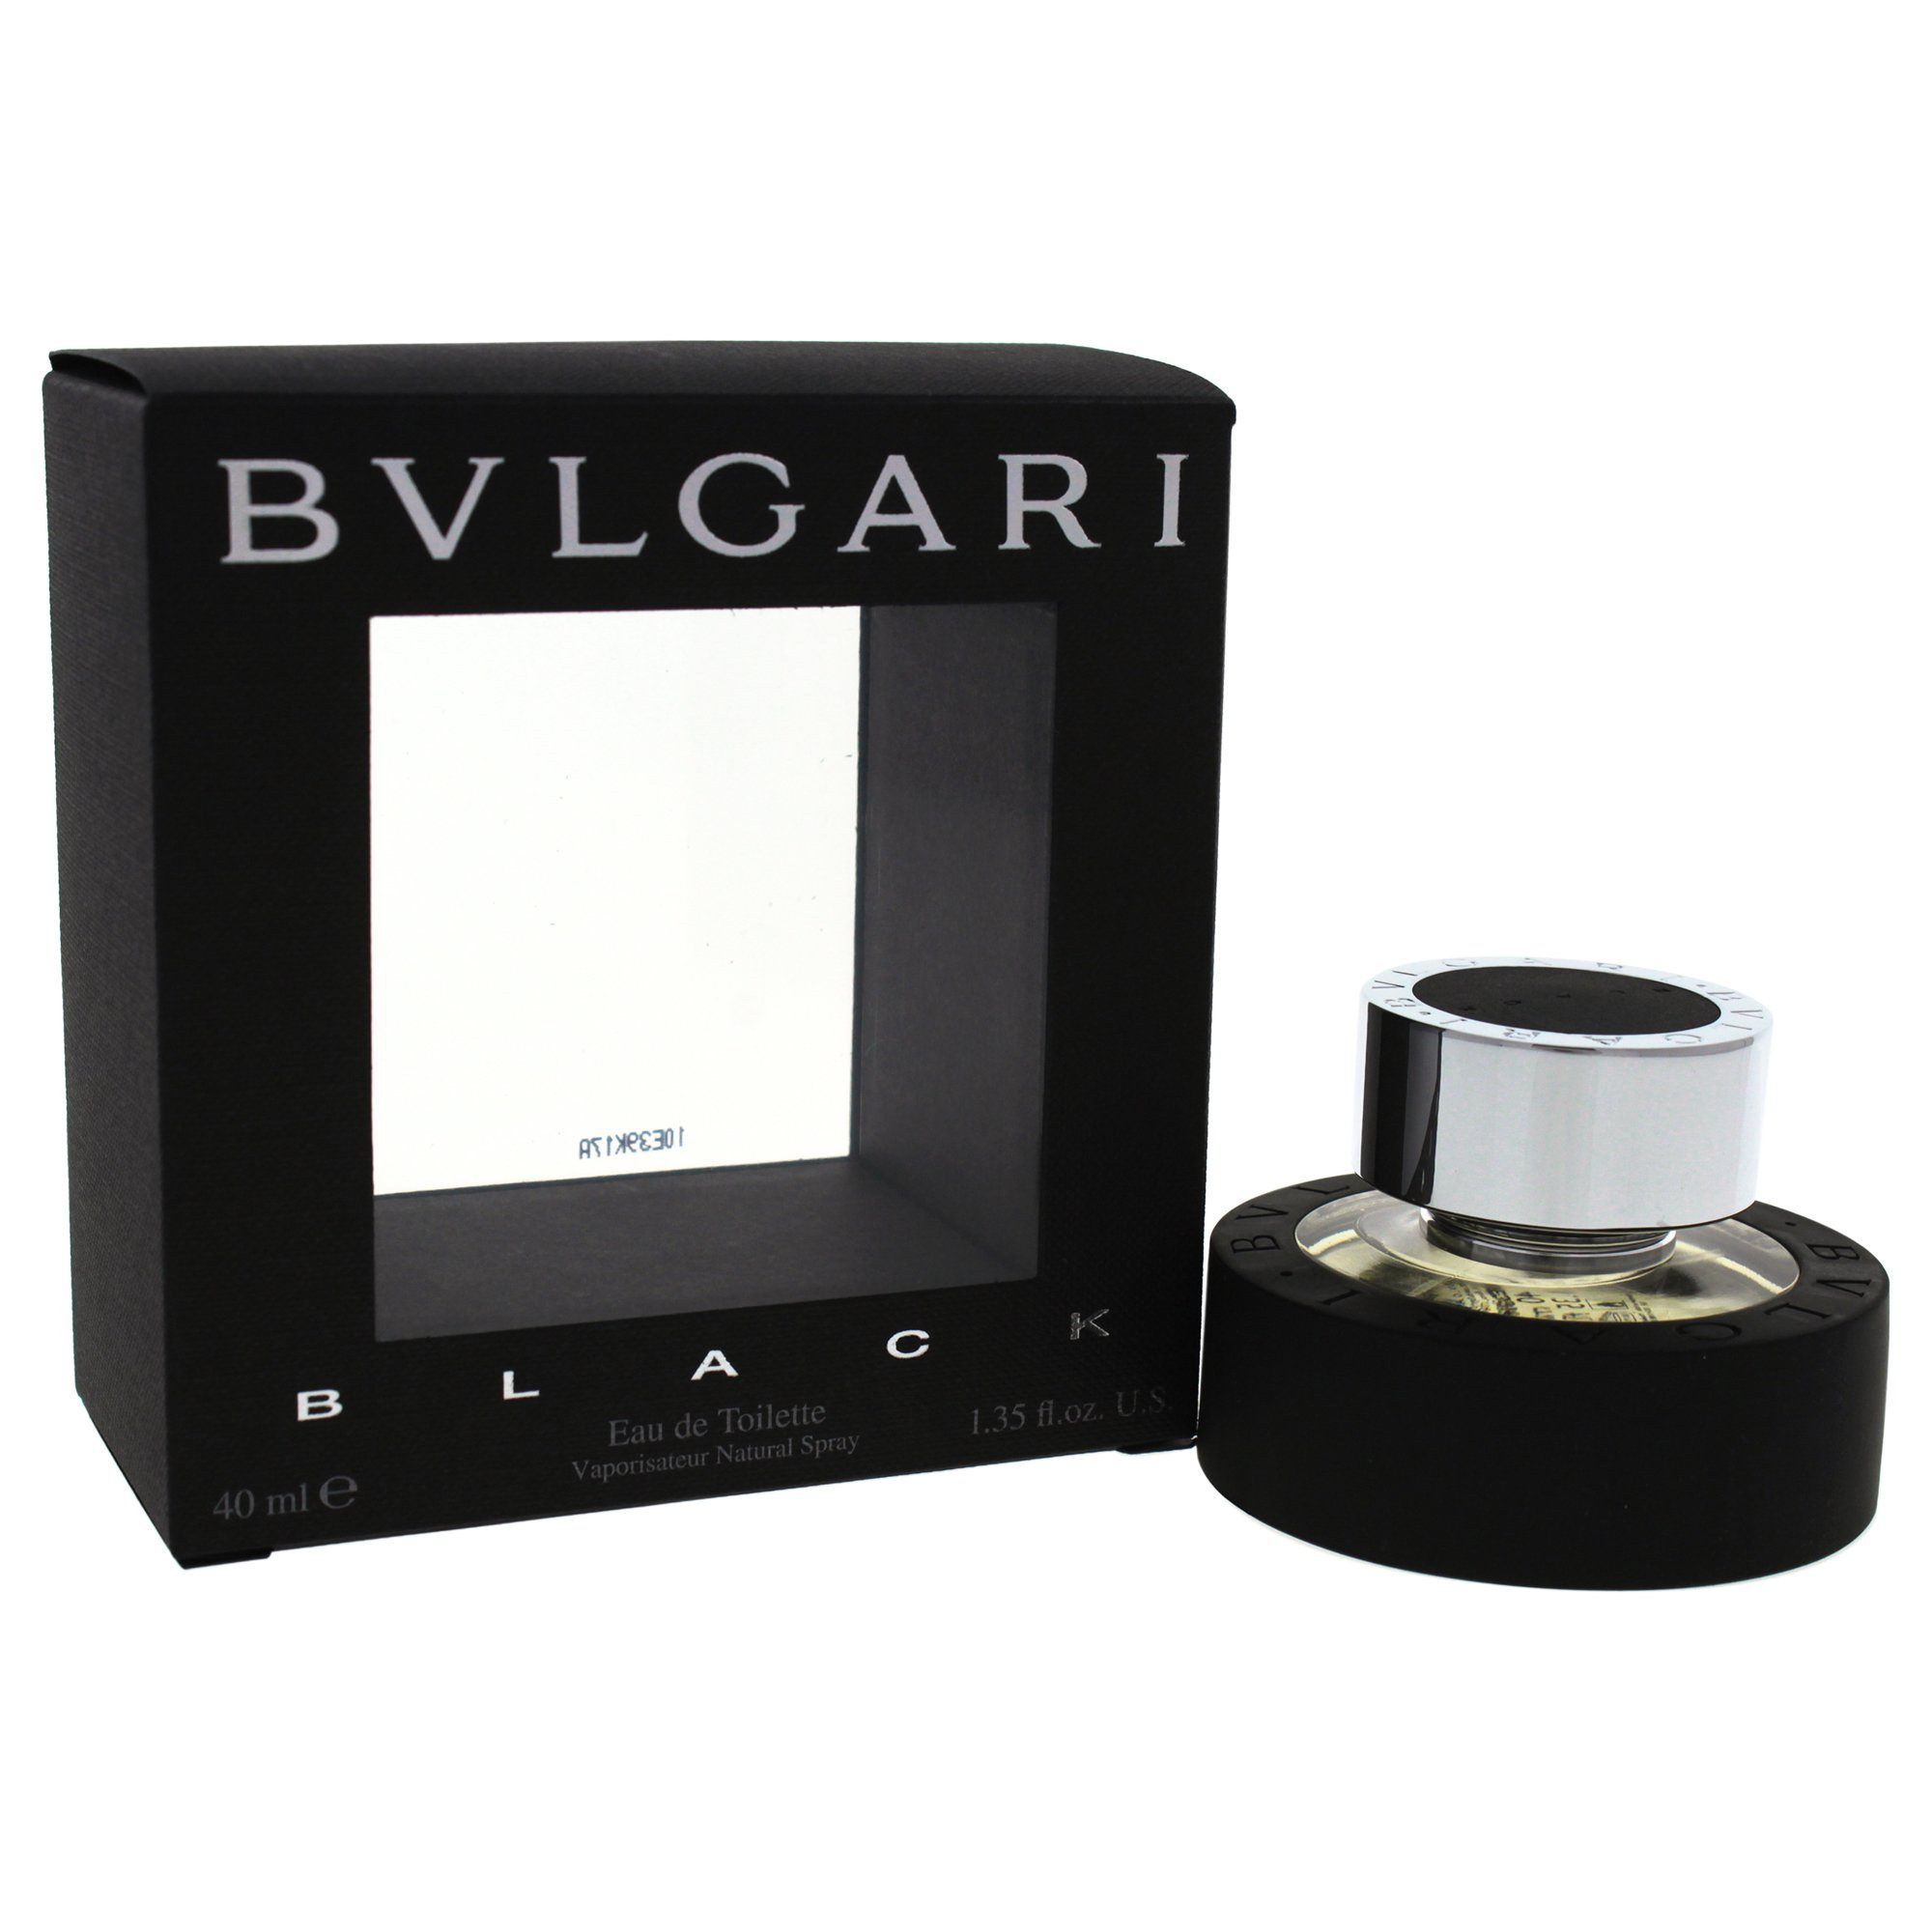 Bvlgari Black 40ml EDT